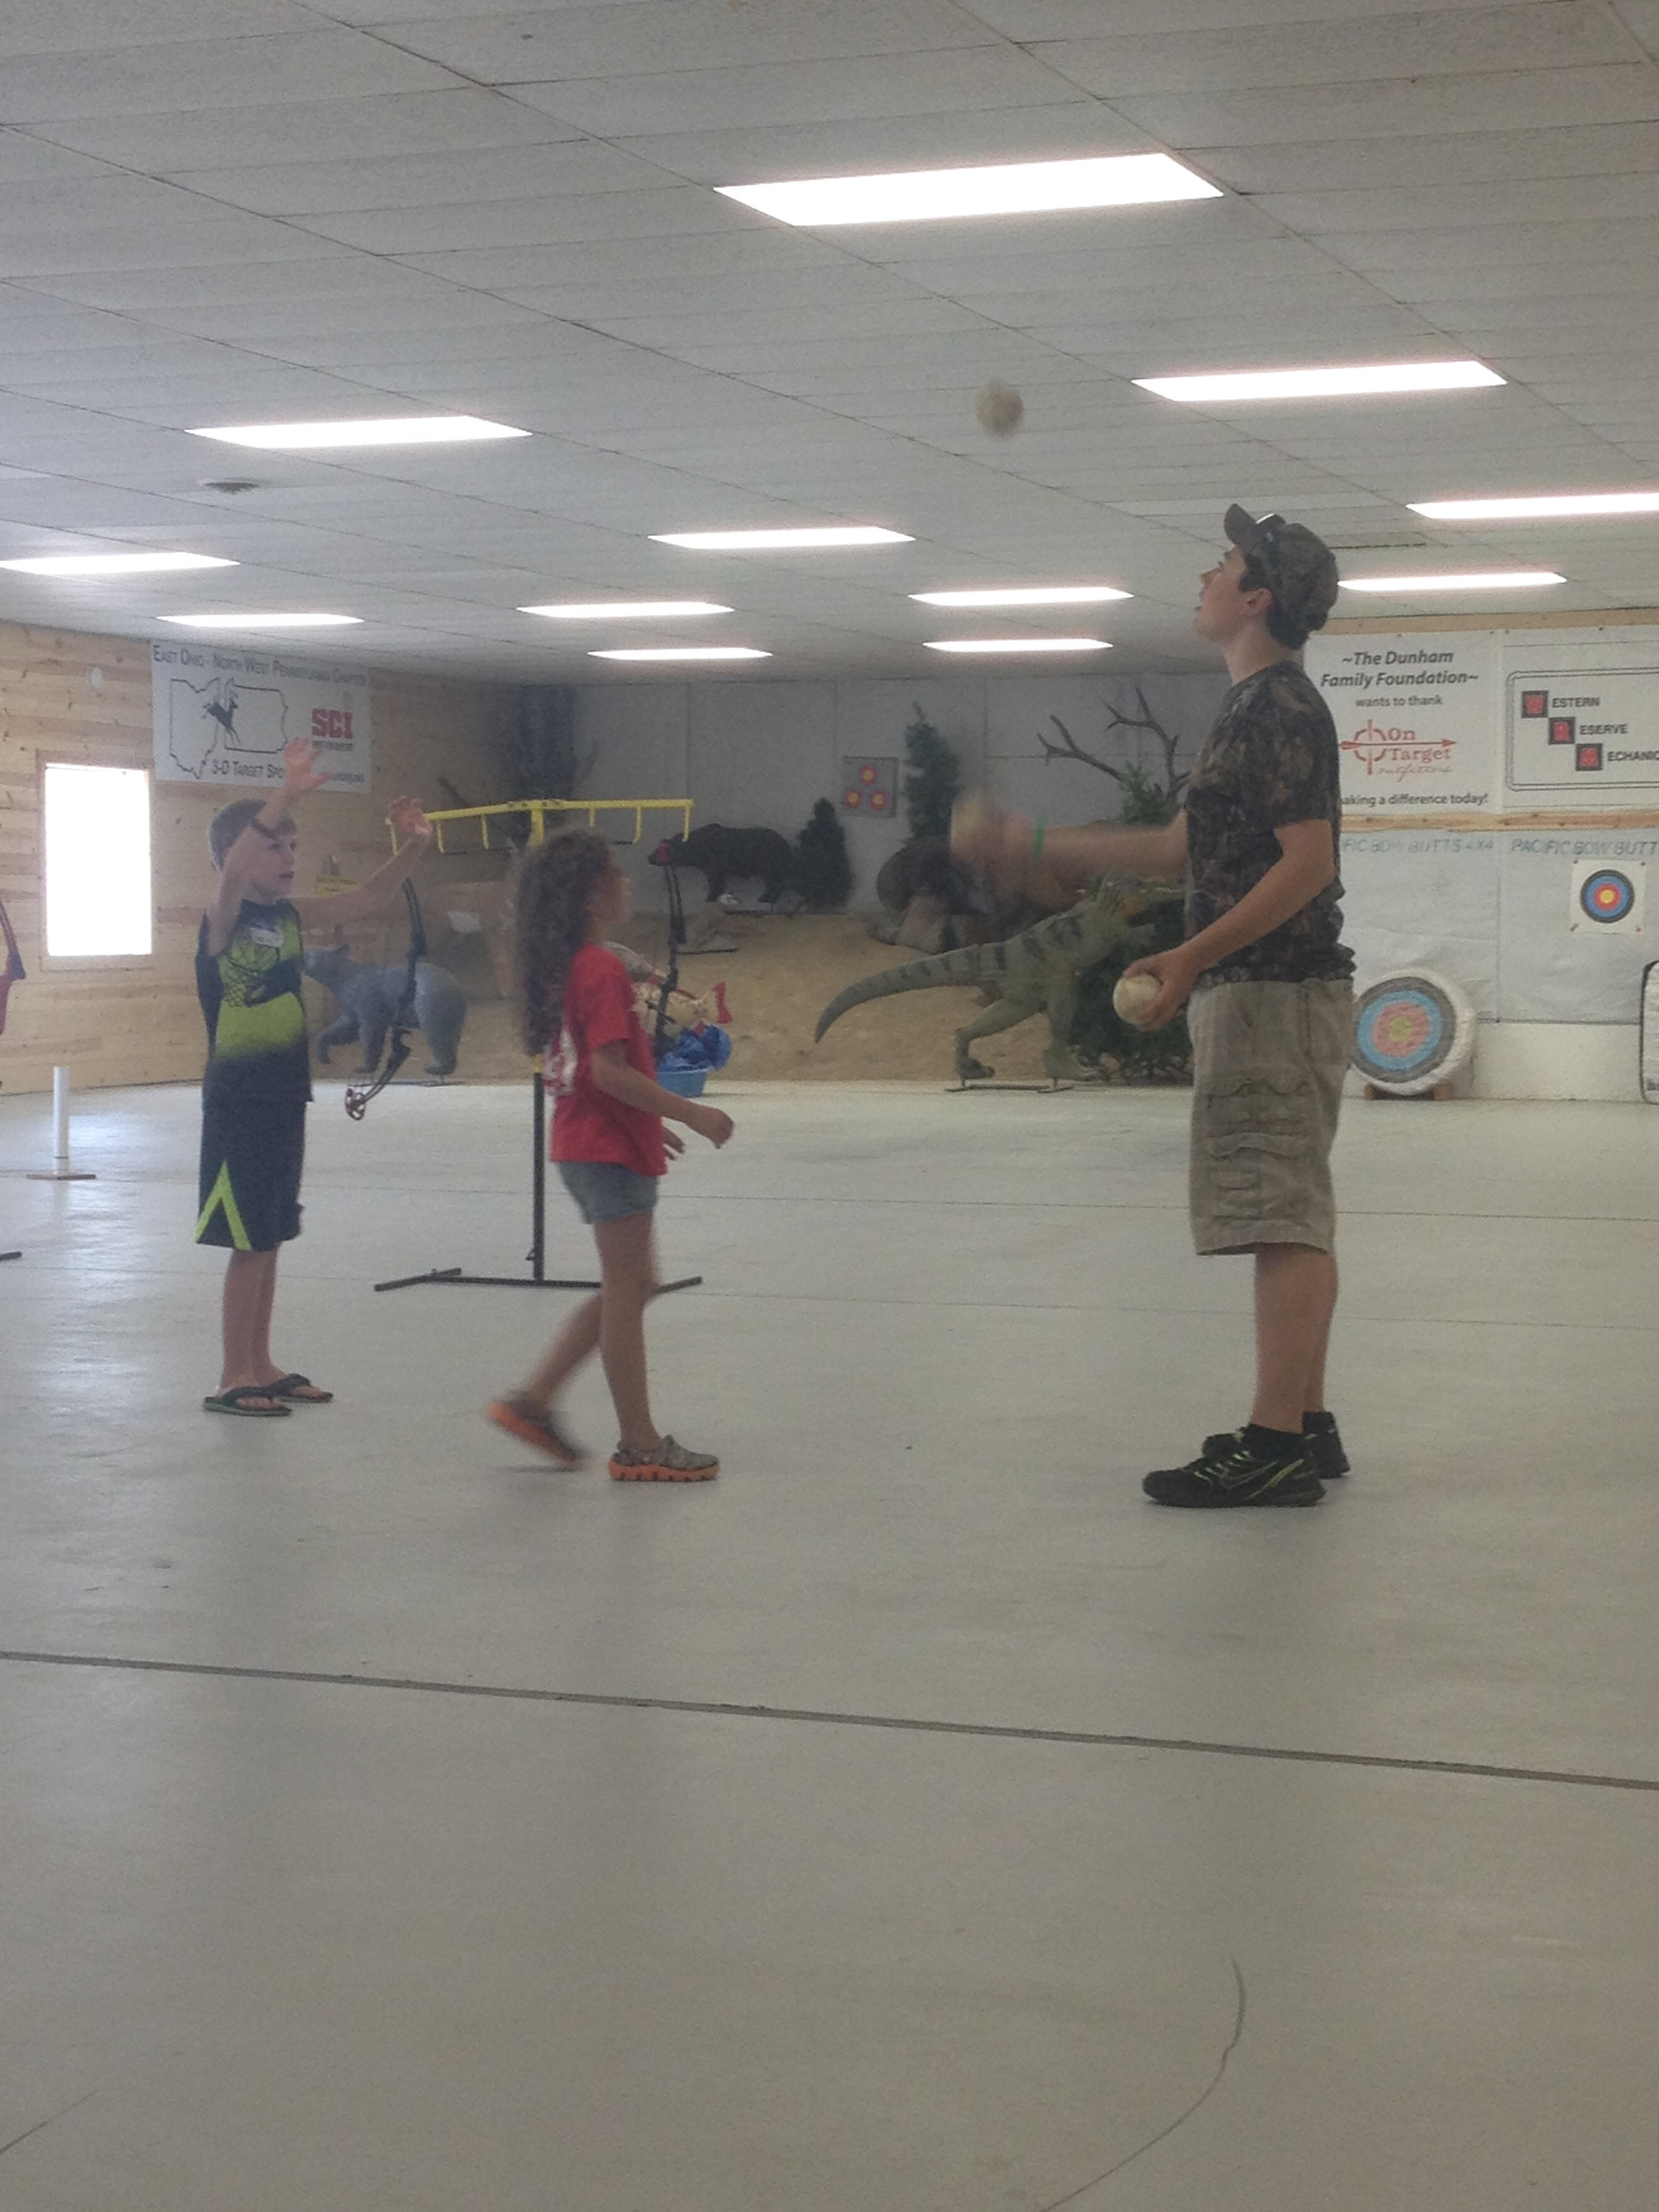 Clayton showing off his juggling skills to the campers.